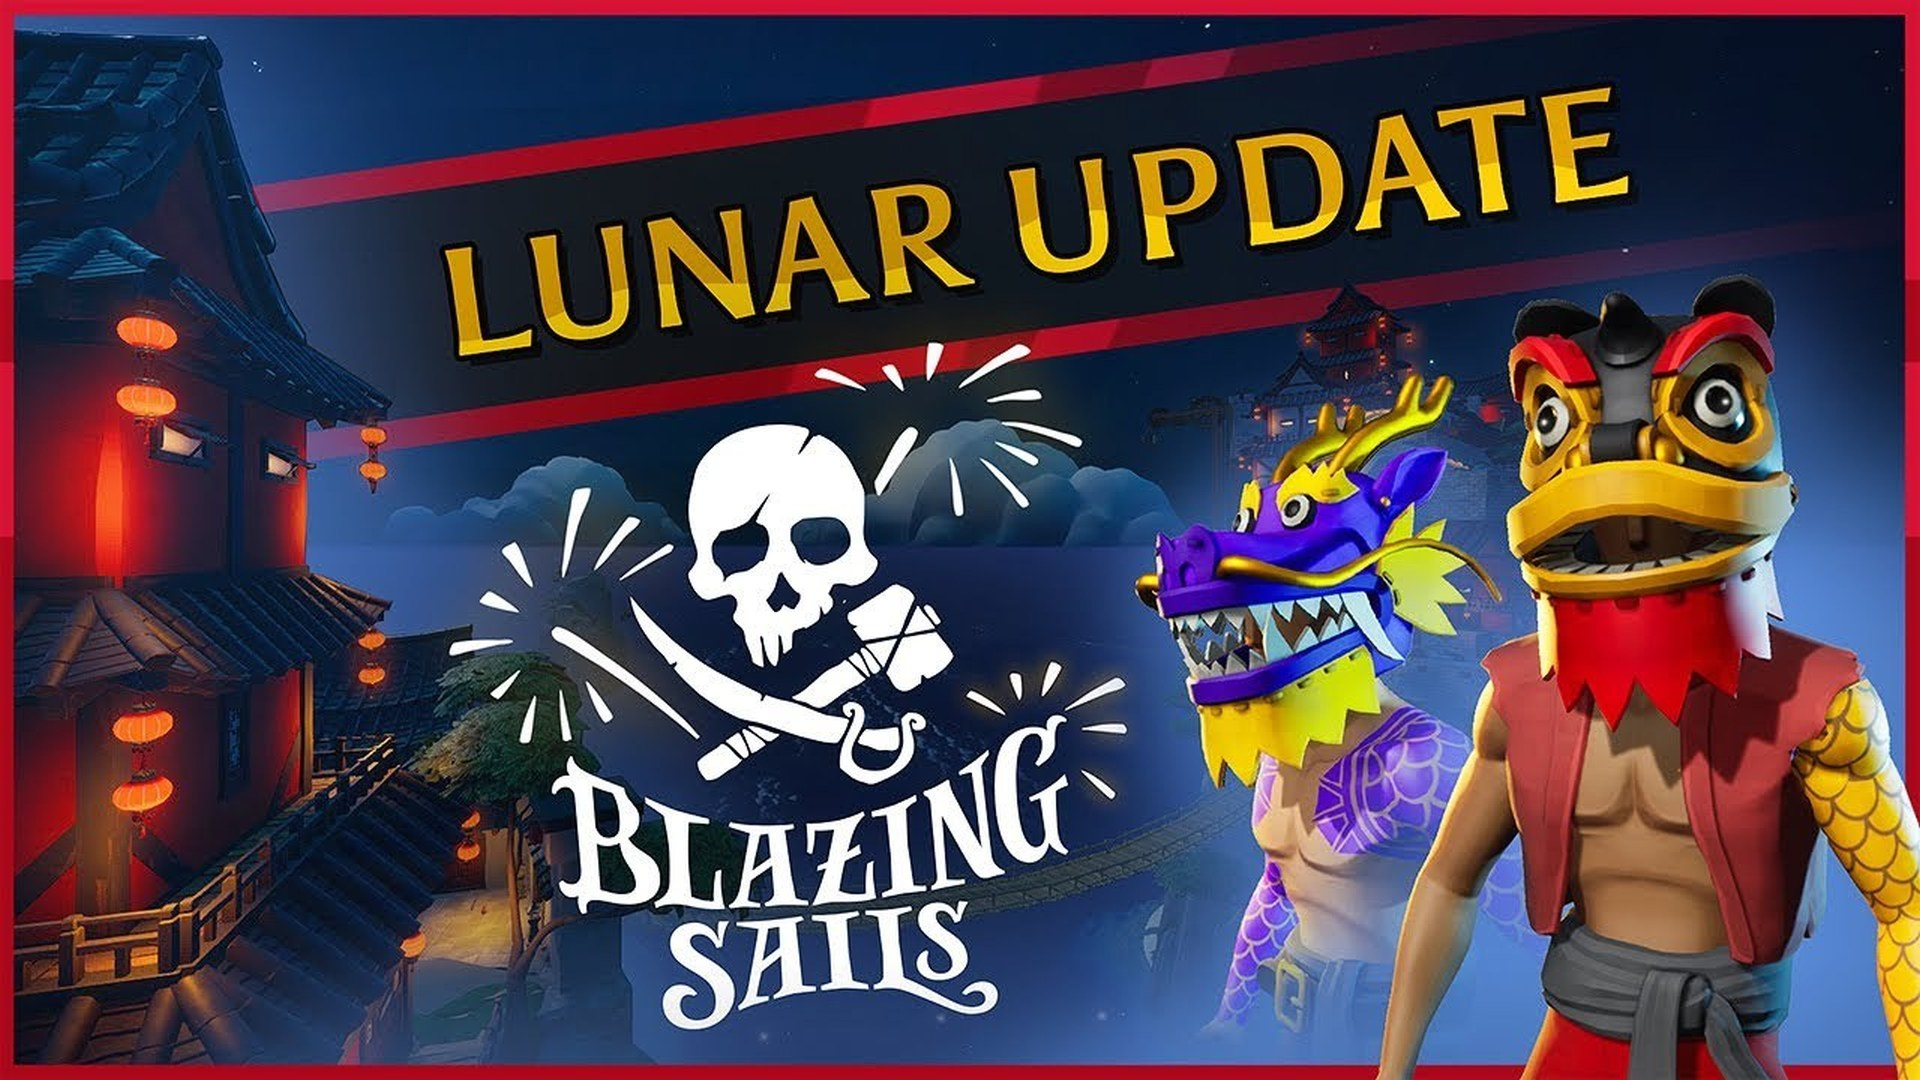 Blazing Sails - Lunar Update | Get Up Games and Iceberg Interactive